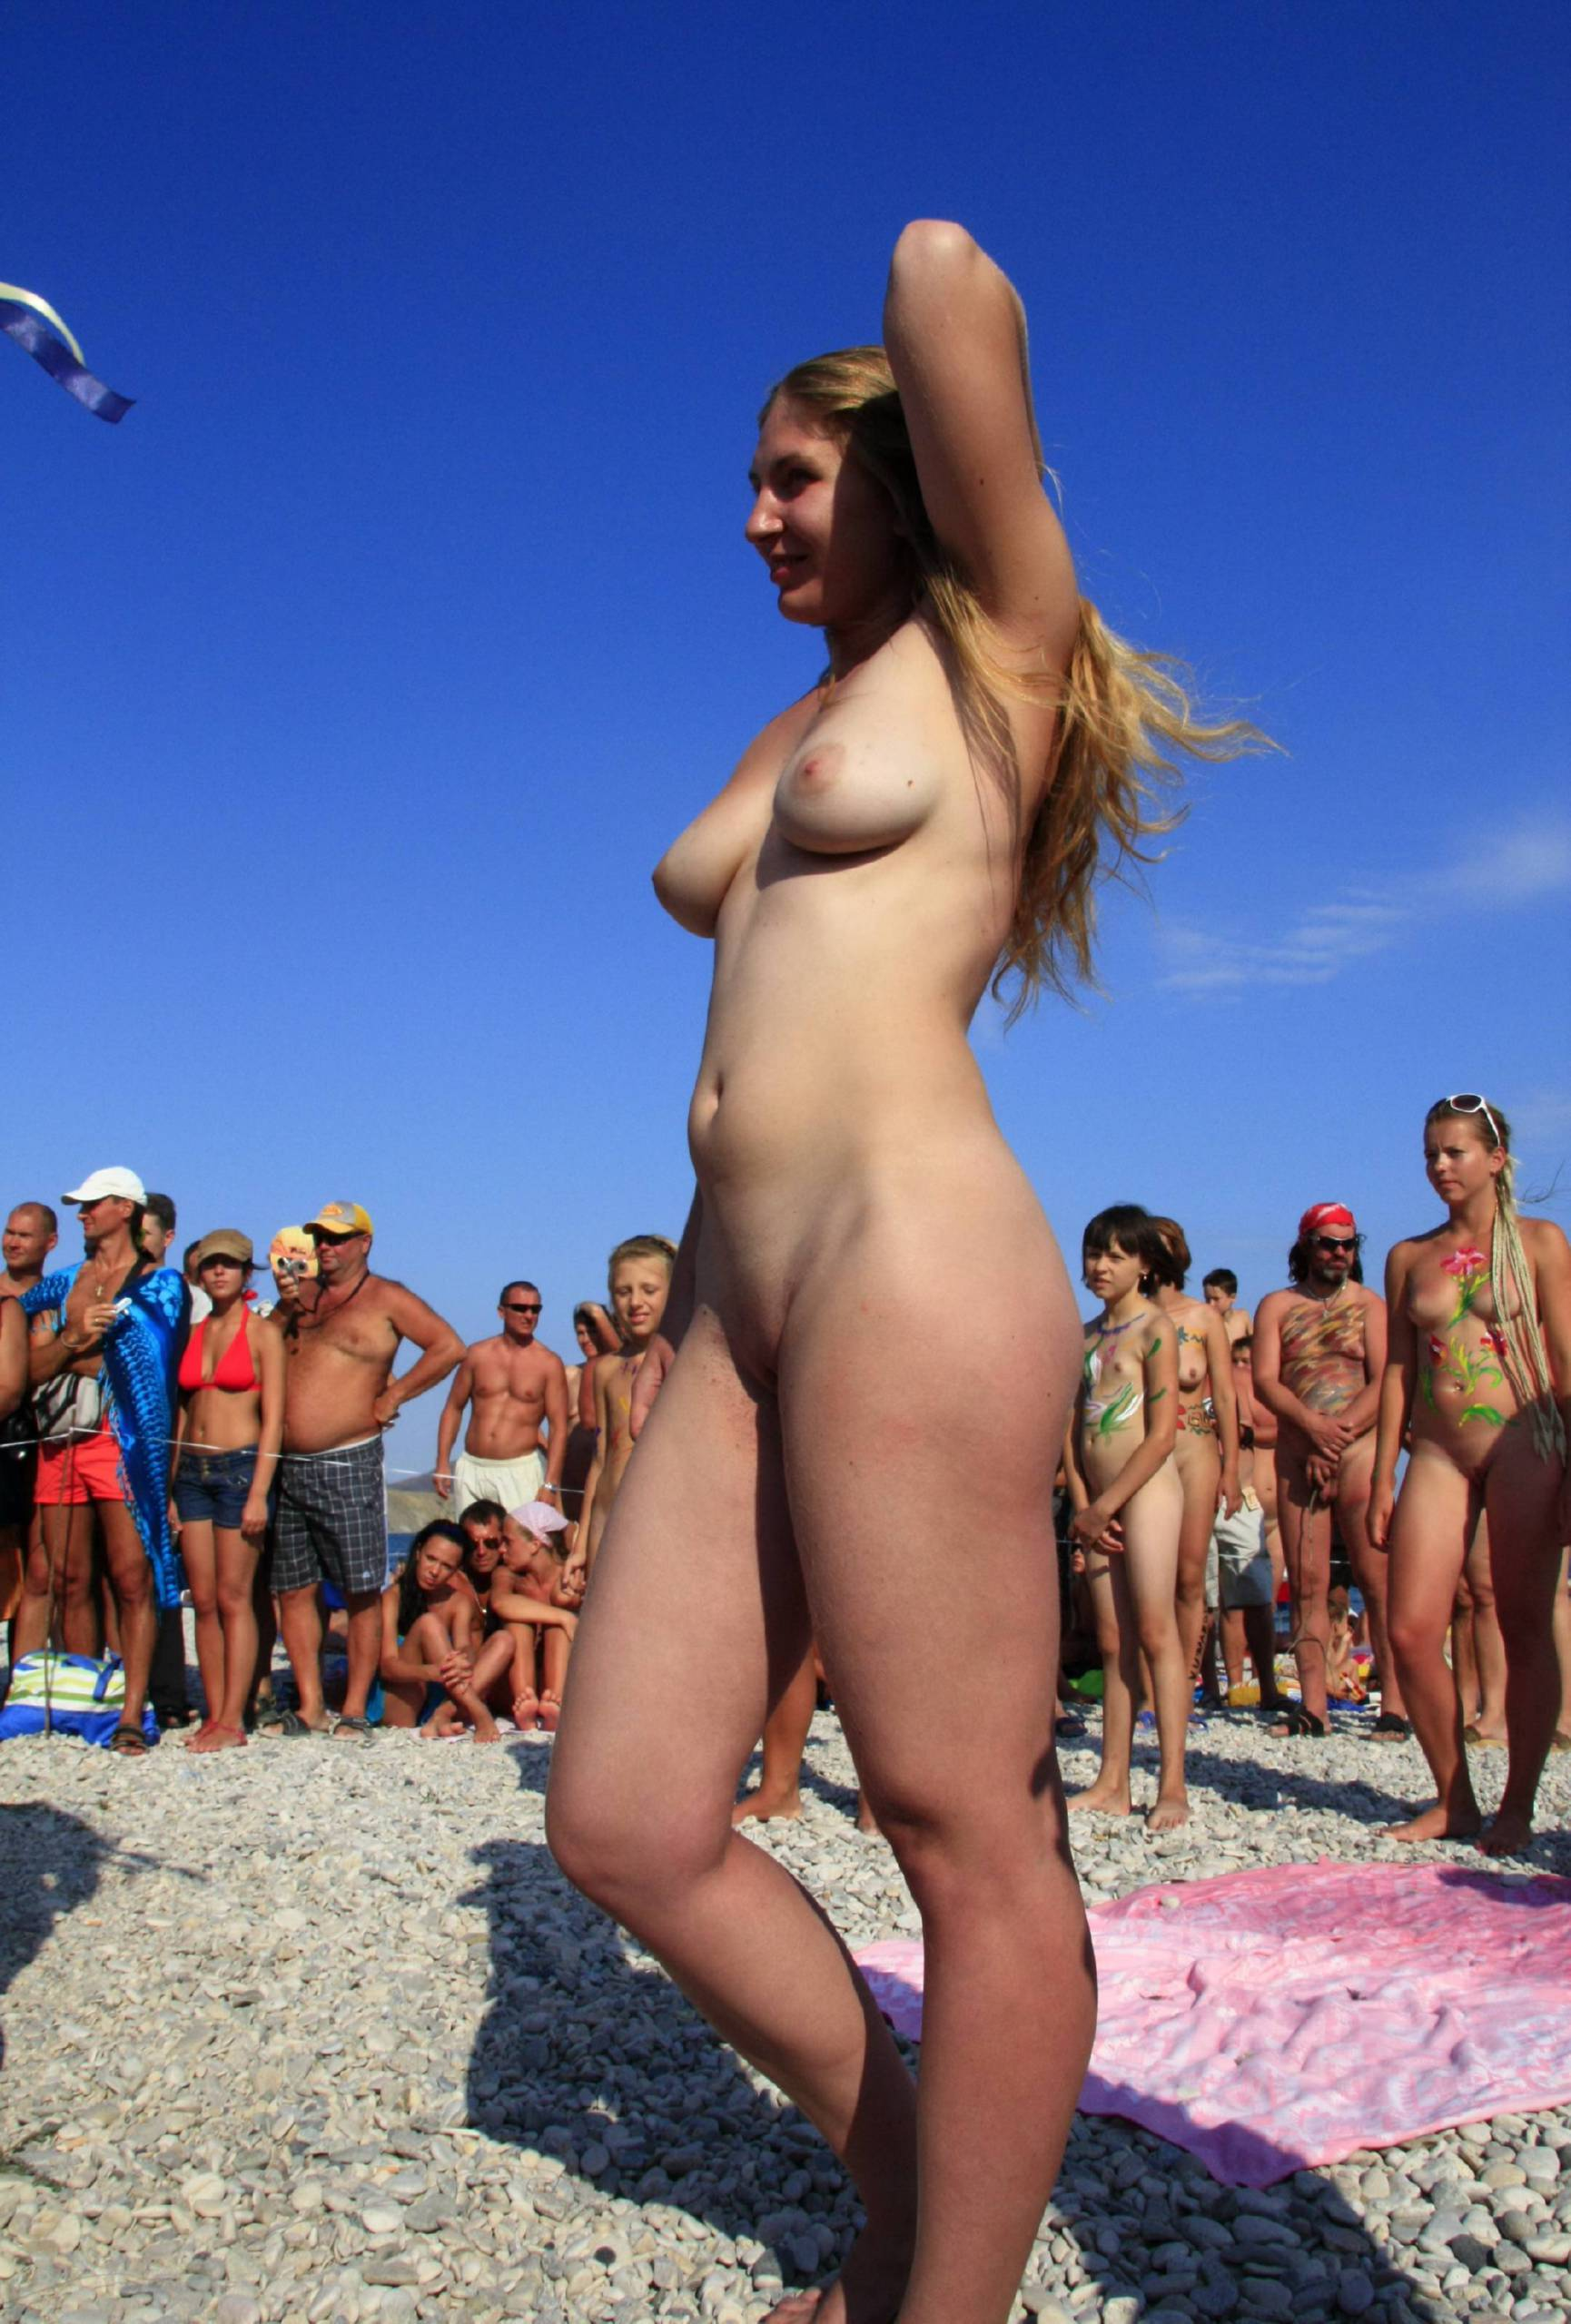 Nudist Pics Nude Group Dance Profile - 2